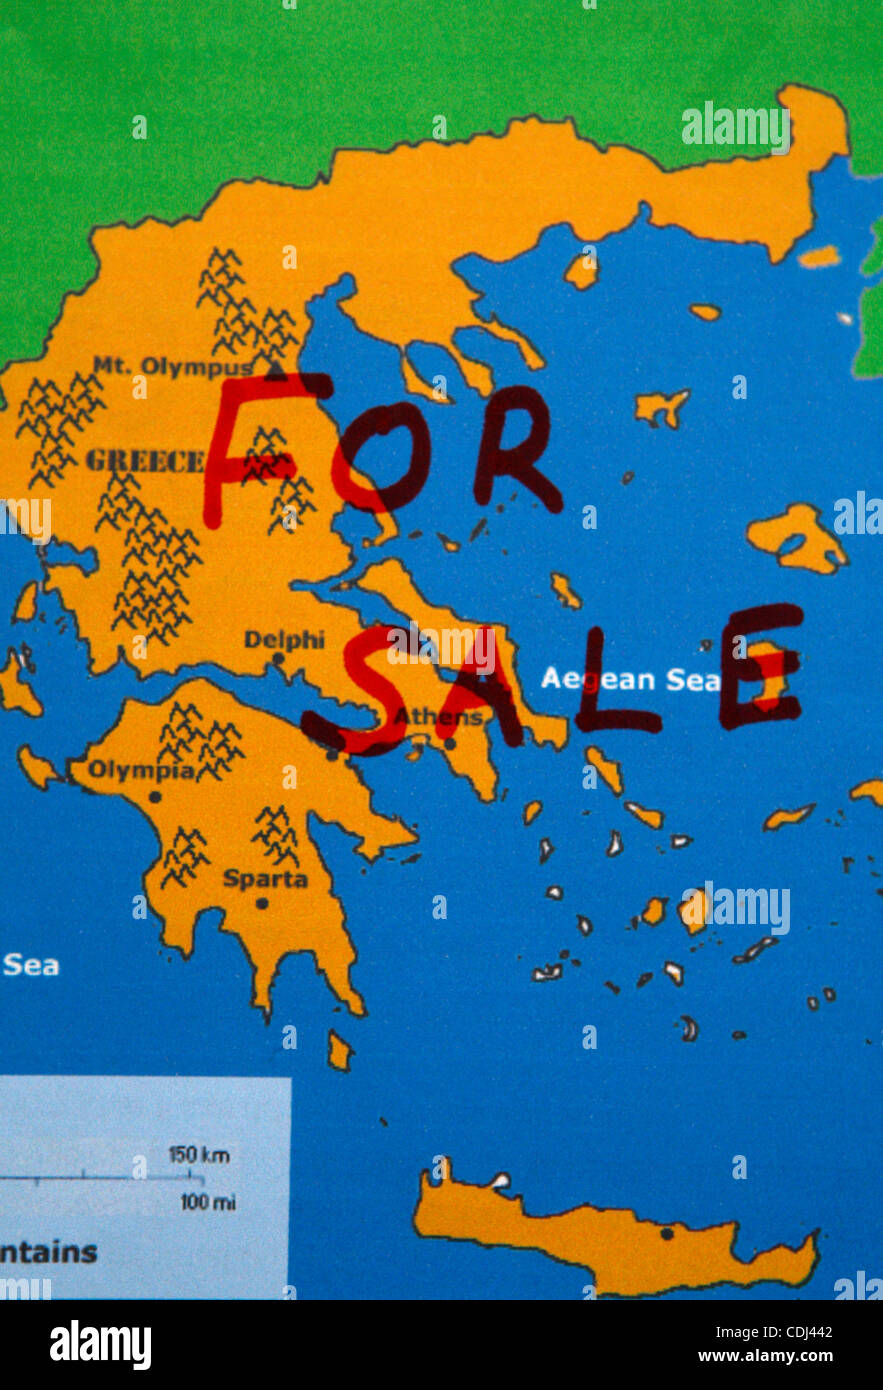 Feb. 15, 2011 - Athens, Greece - The European Union and the International Monetary Fund on Friday told Greece to - Stock Image